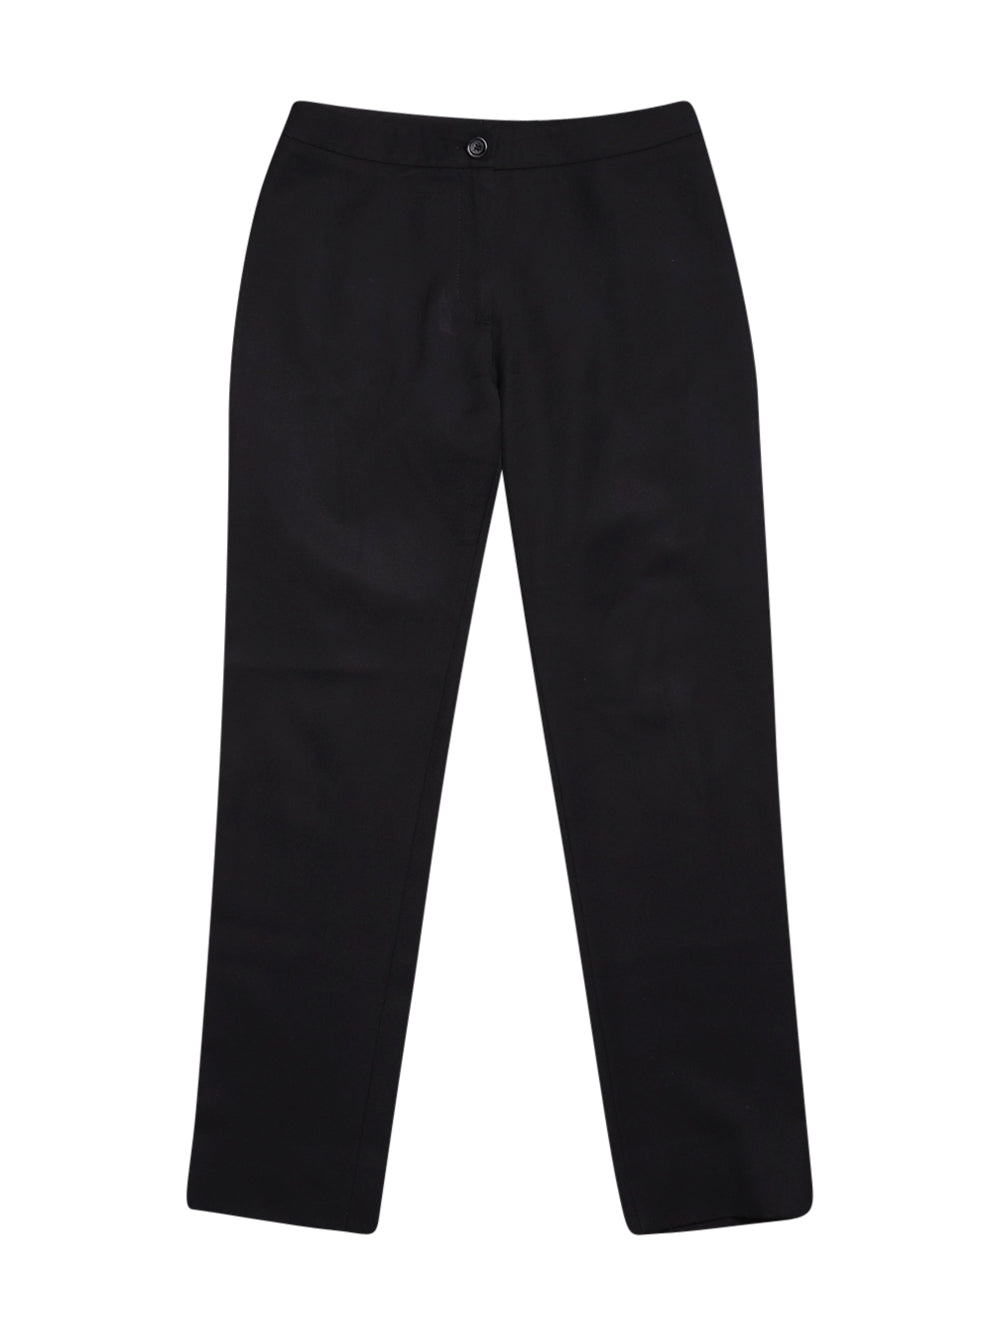 Front photo of Preloved Caractère Black Woman's trousers - size 8/S